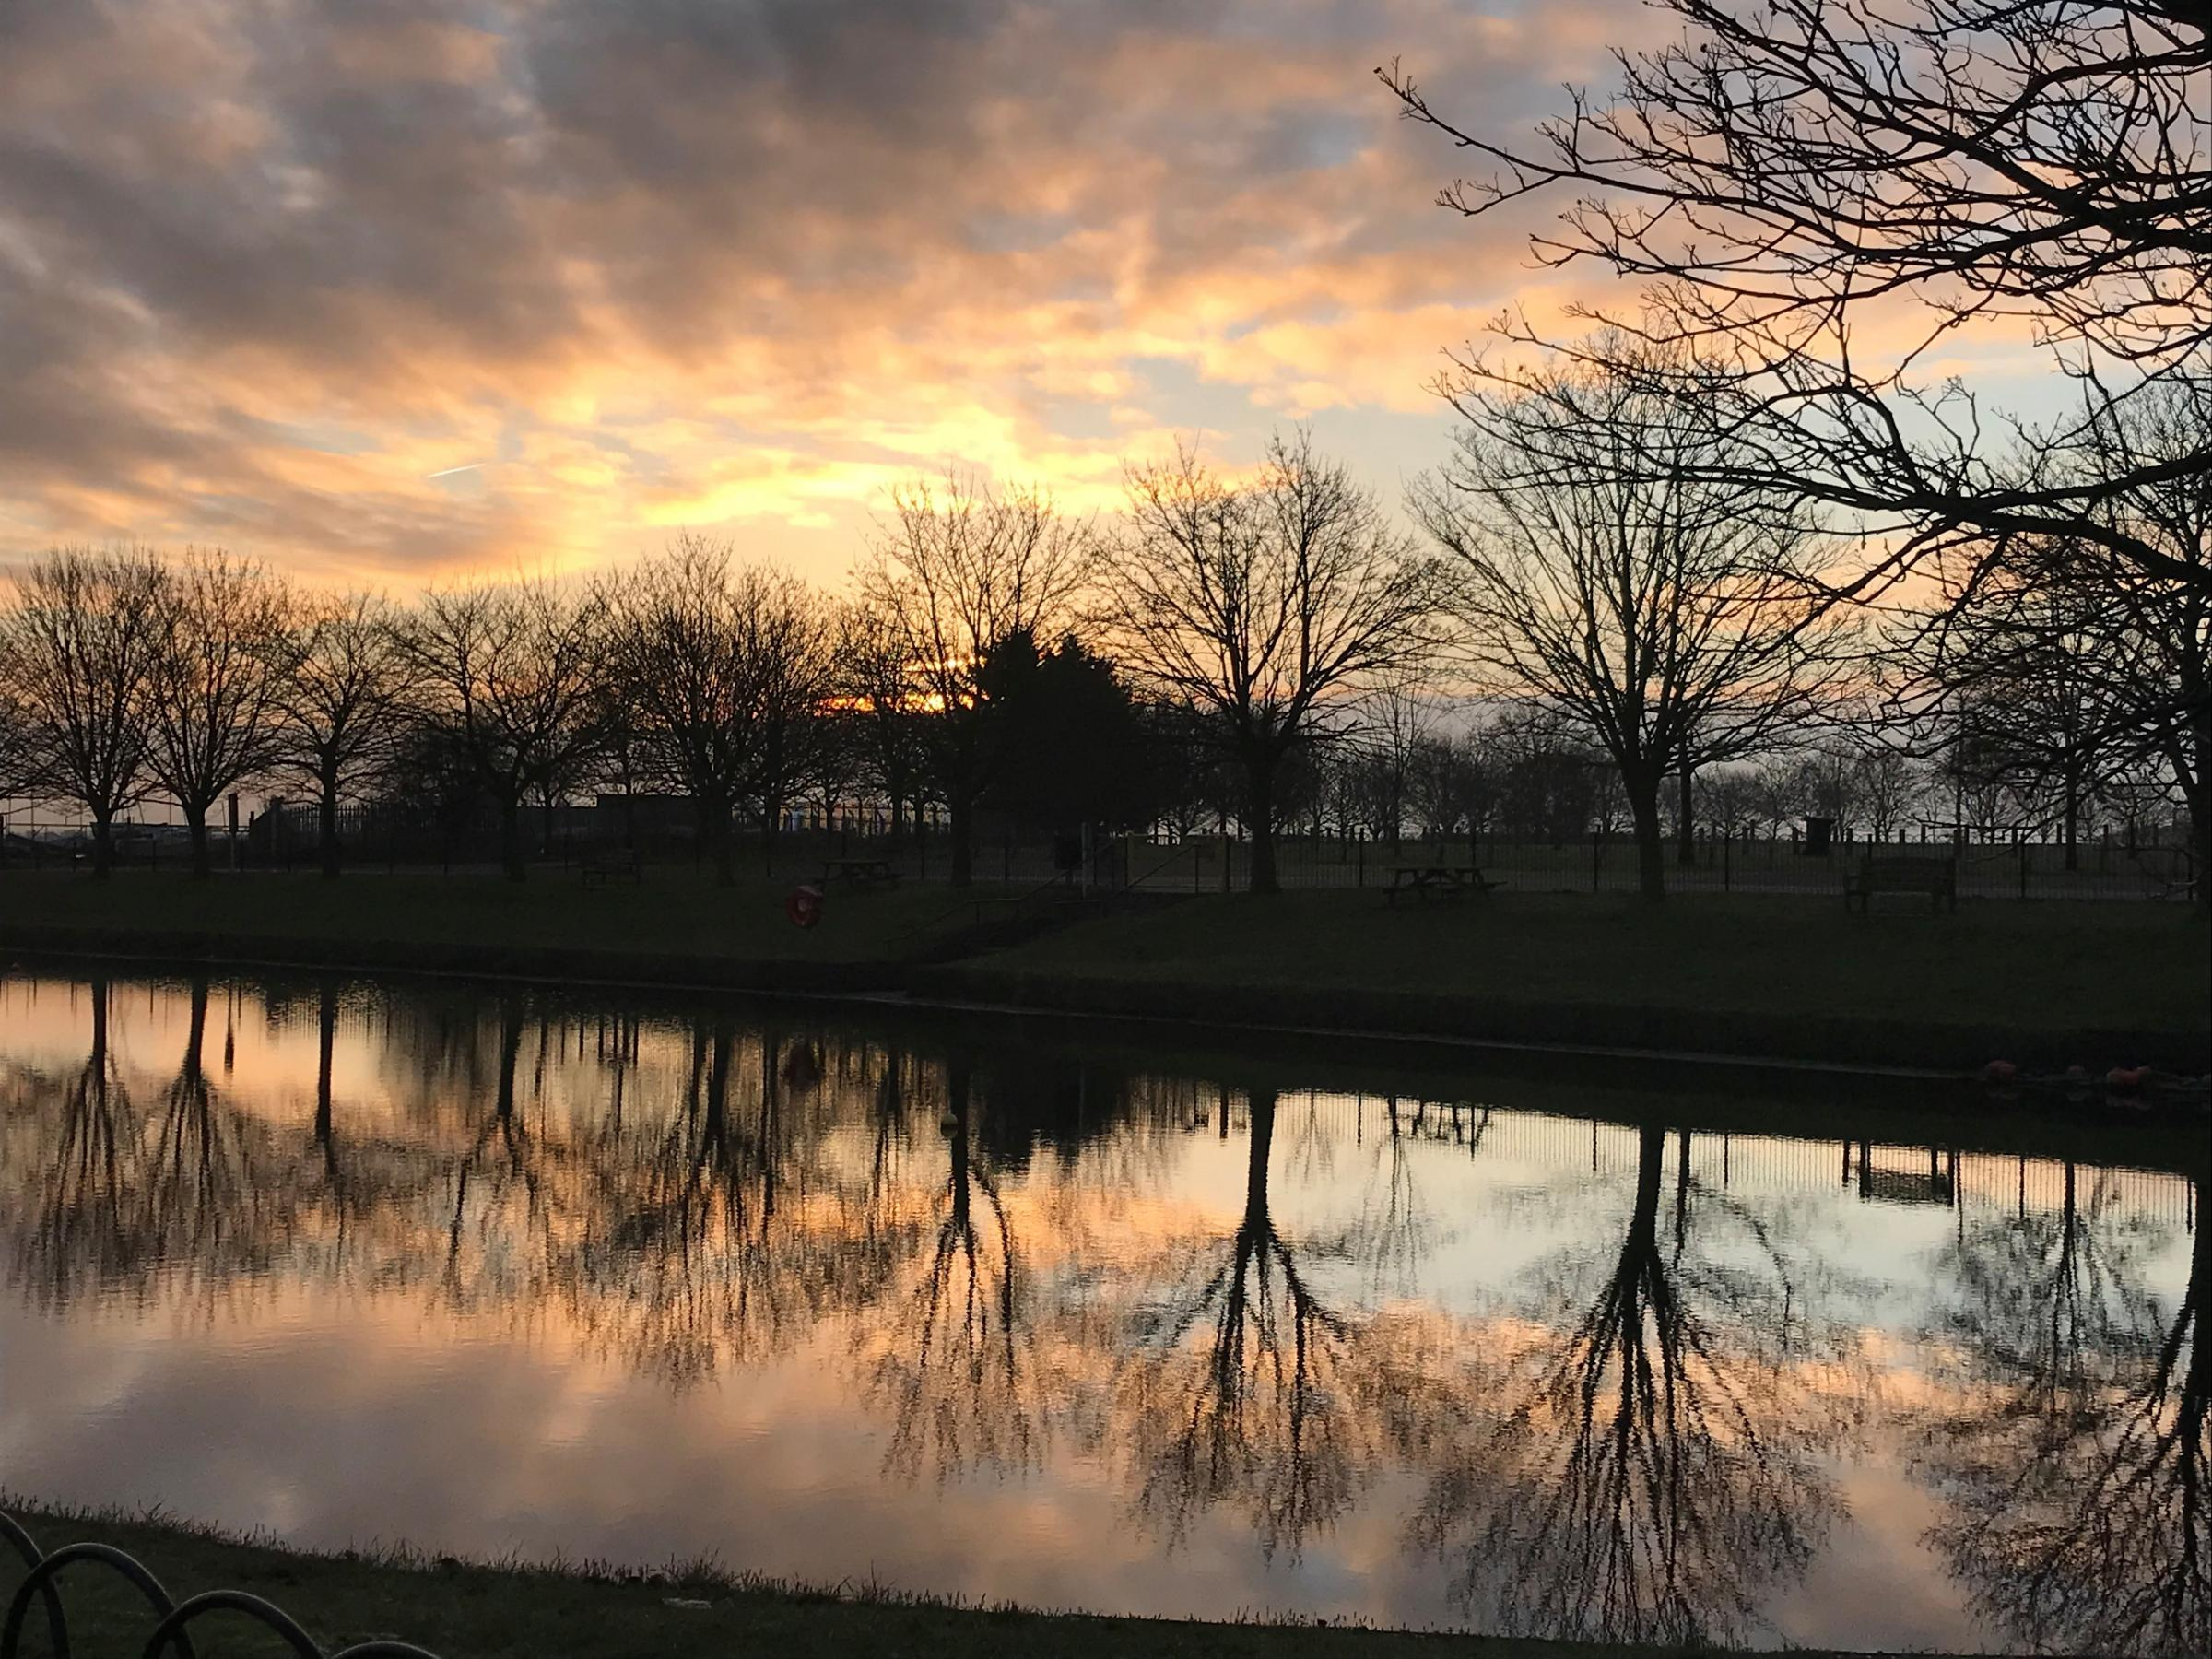 This photograph was taken on Thursday 3rd January in promenade park overlooking the boating lake at 8.30 am by Christine Geer 4 The Mallows Fambridge Road Maldon